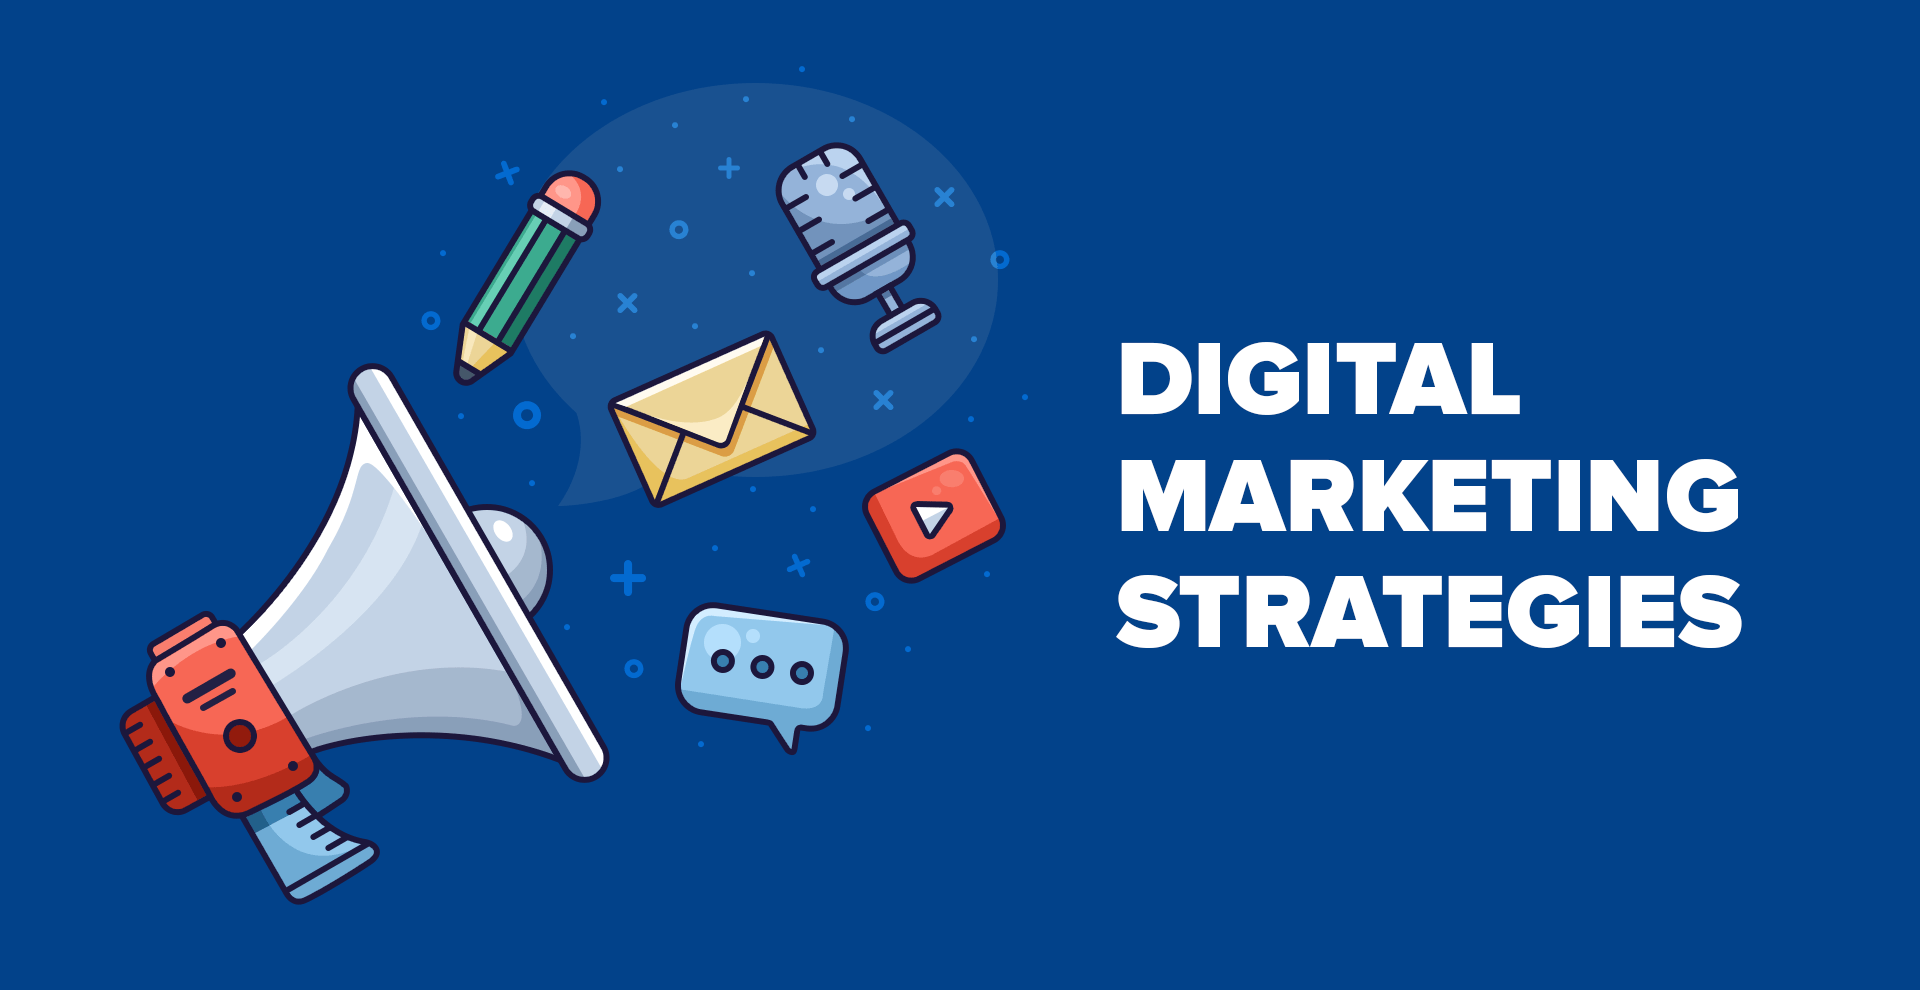 Benefits of having a digital marketing strategy